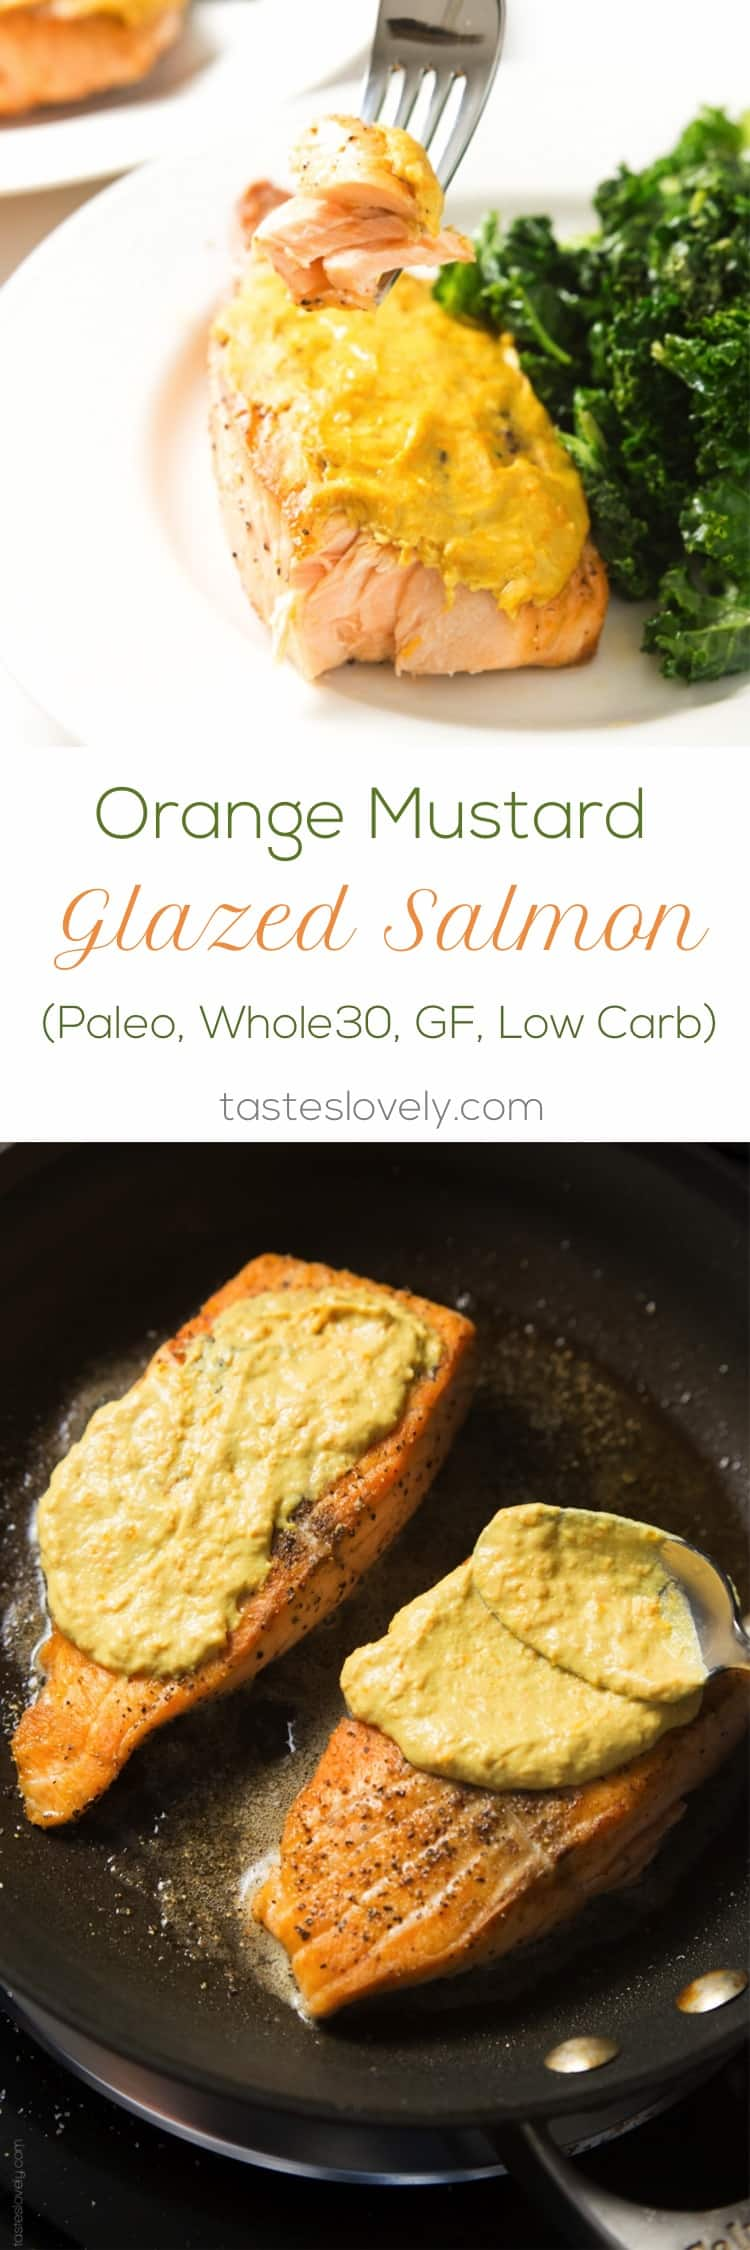 Orange Mustard Glazed Salmon | tasteslovely.com